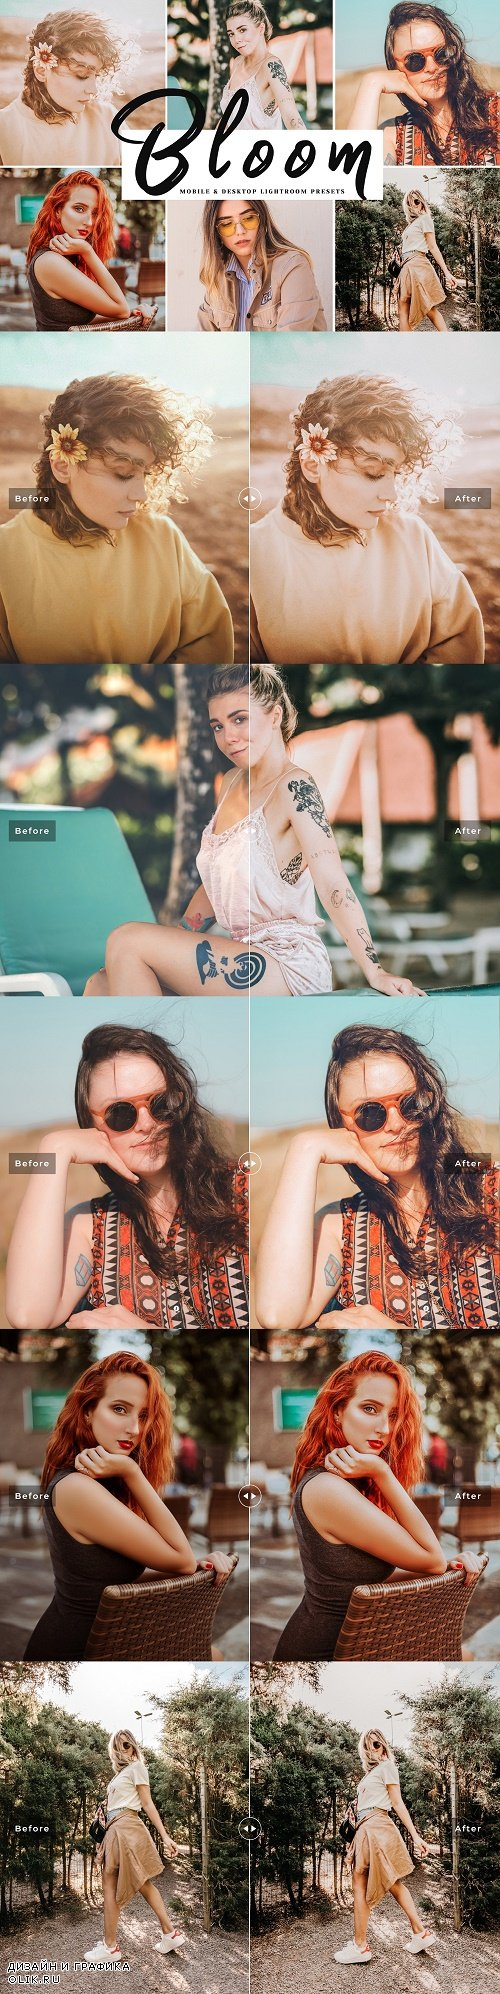 Bloom Lightroom Presets - 3882317